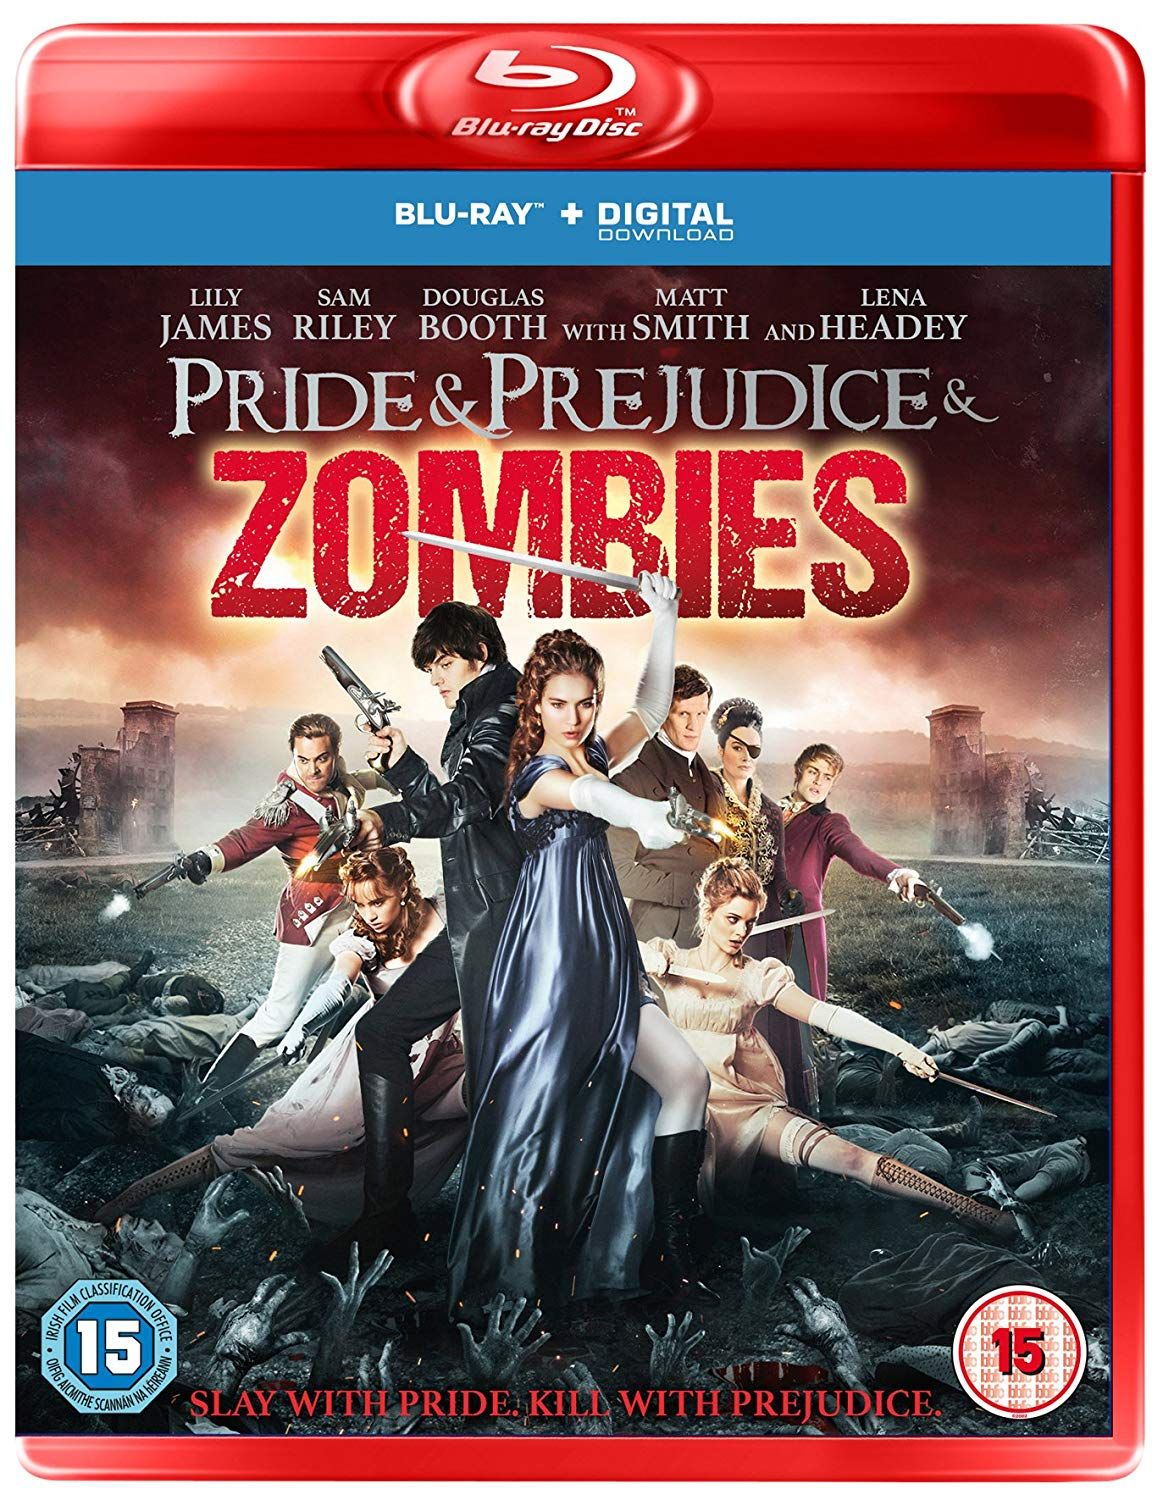 Pride & Prejudice & Zombies (Blu-Ray) - 1